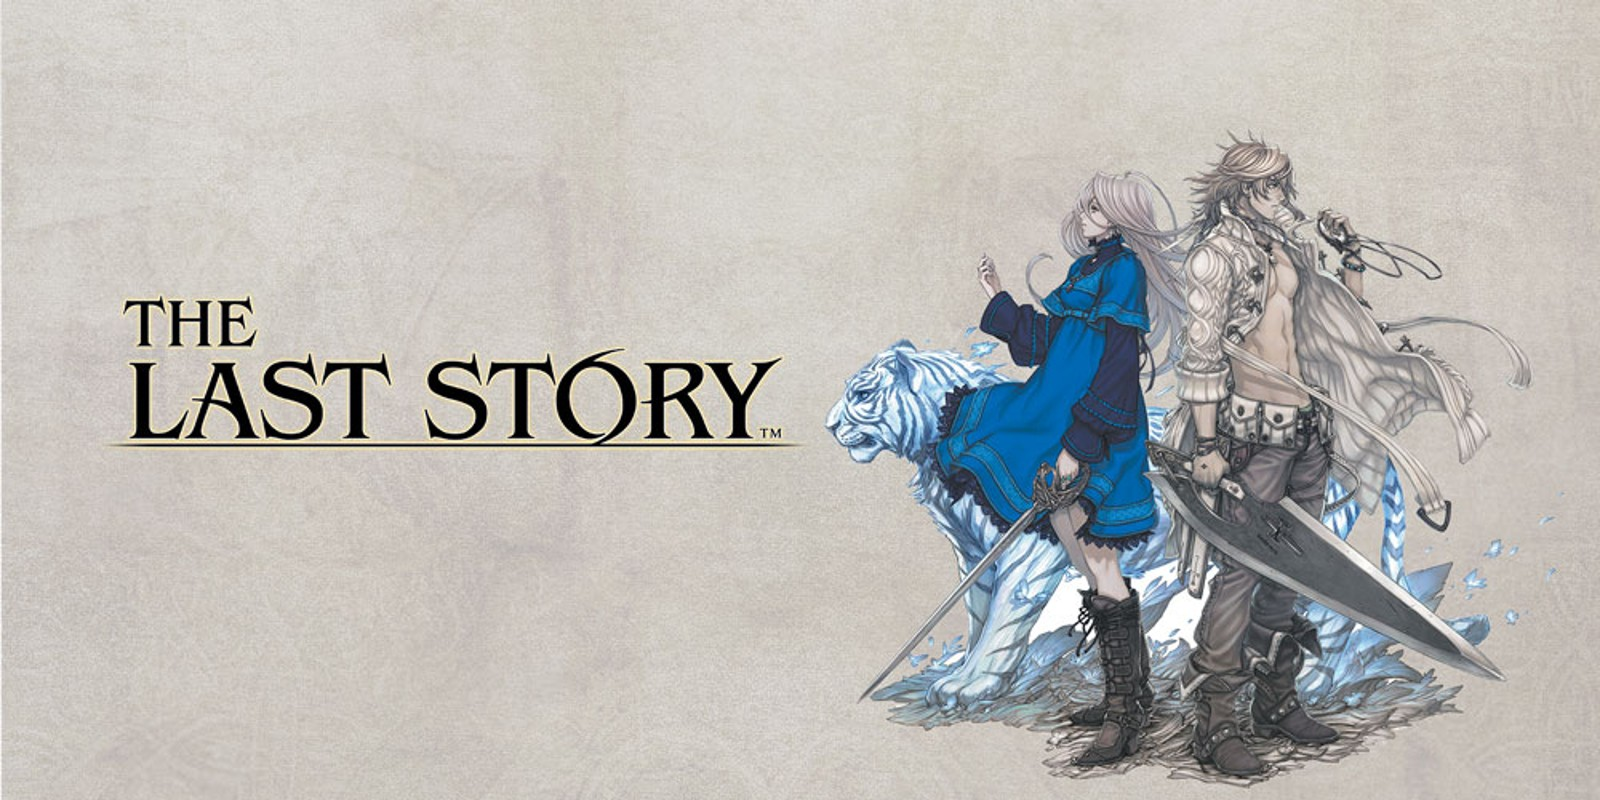 The Last Story 2